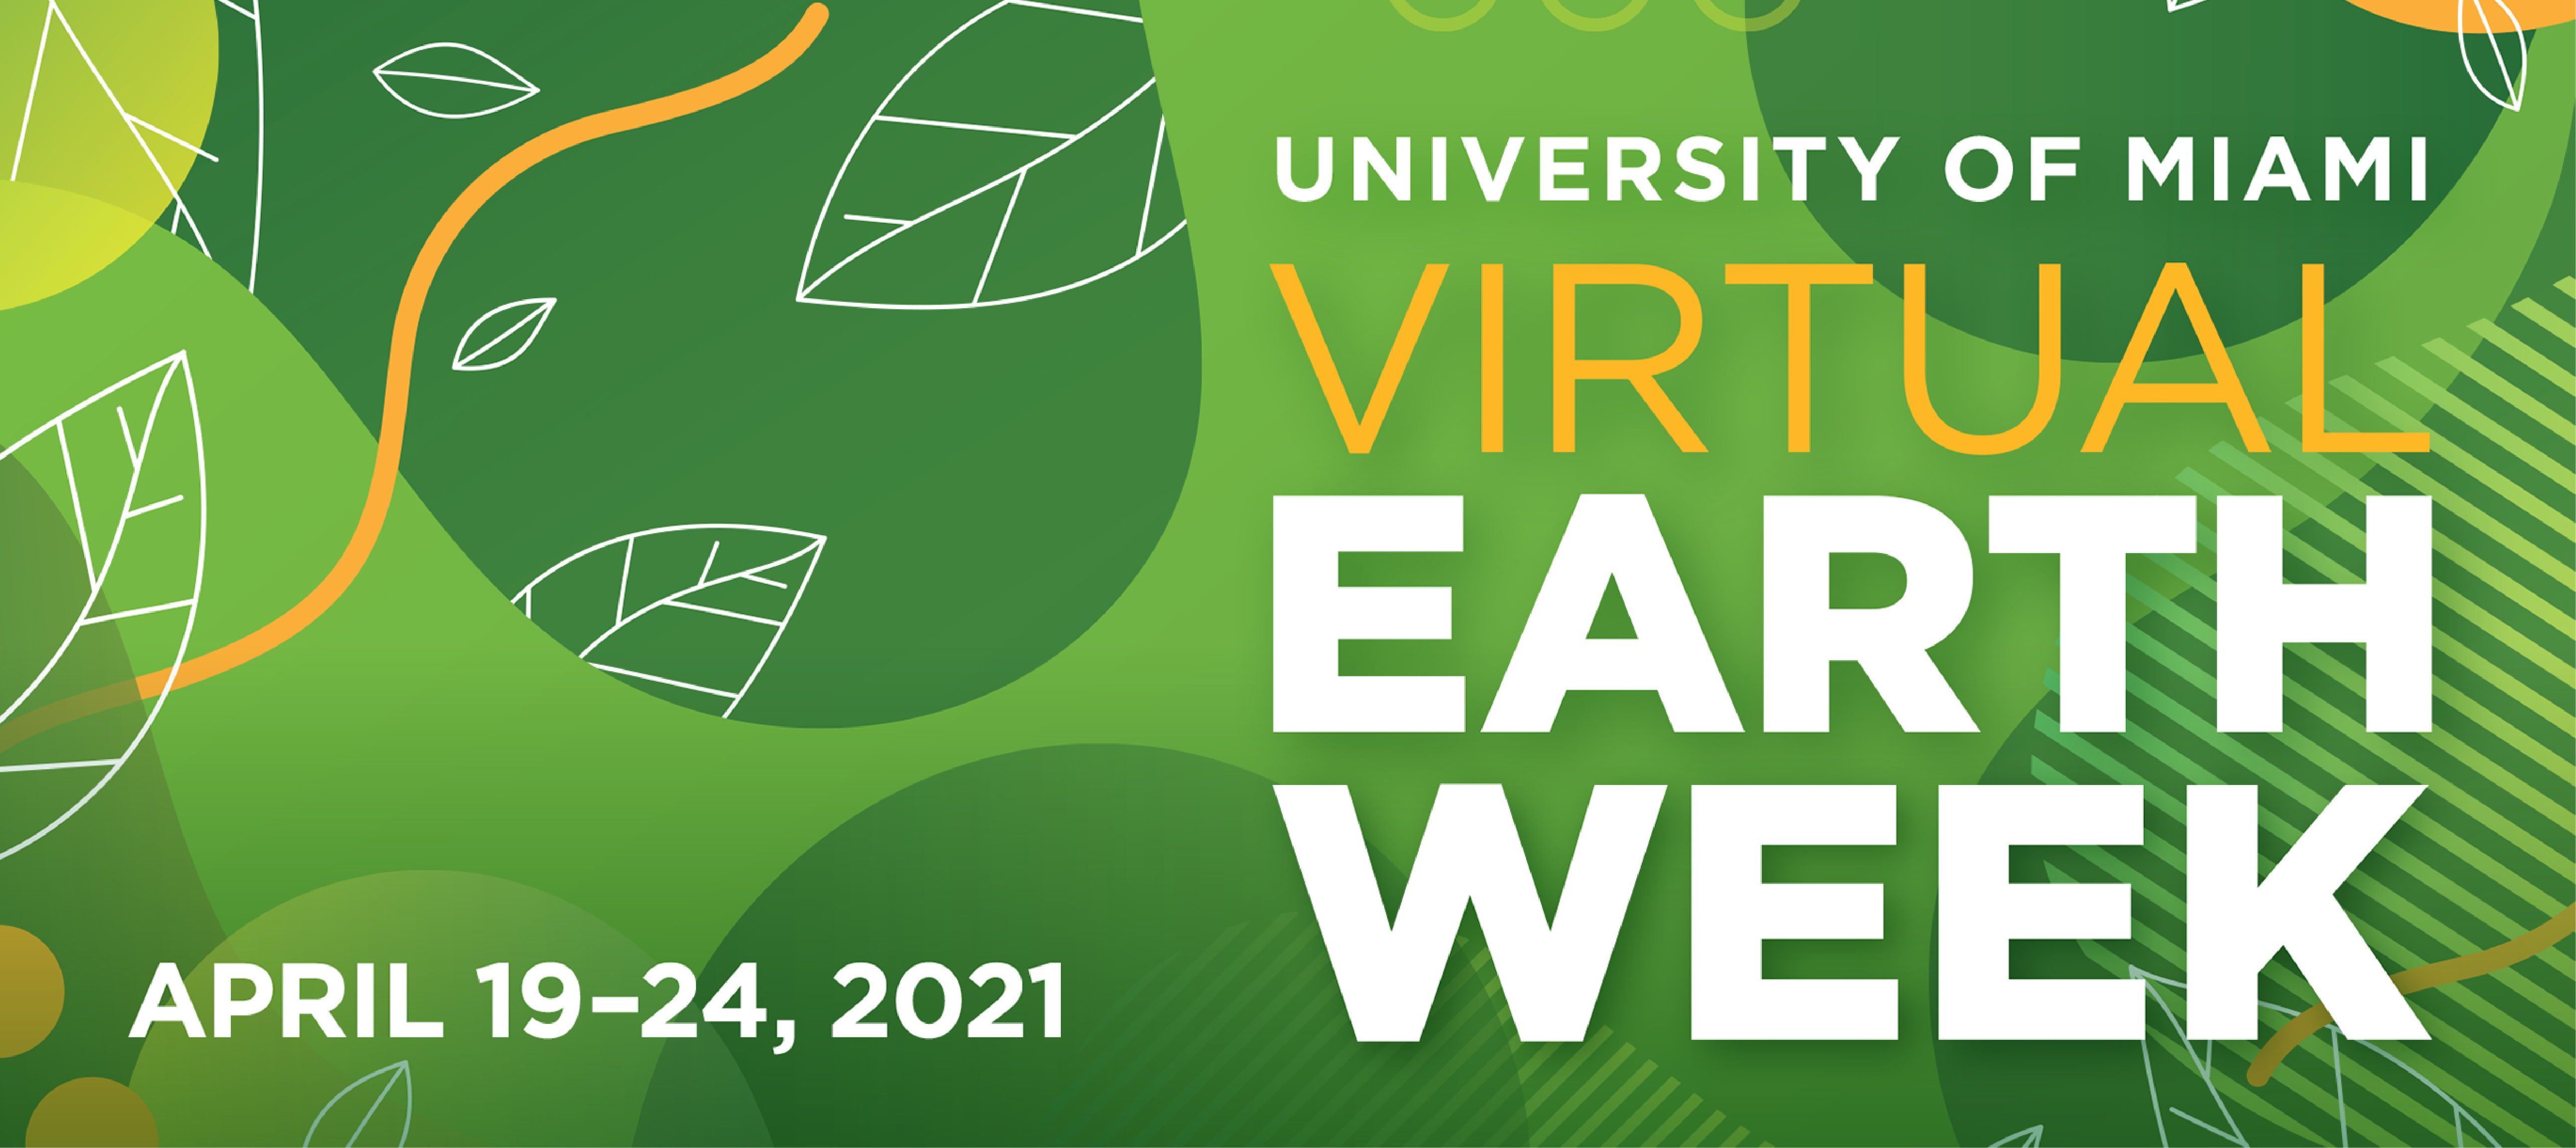 "Green rectangle with white outlines of leaves with the phrase ""University of Miami Virtual Earth Week April 19-24, 2021"""